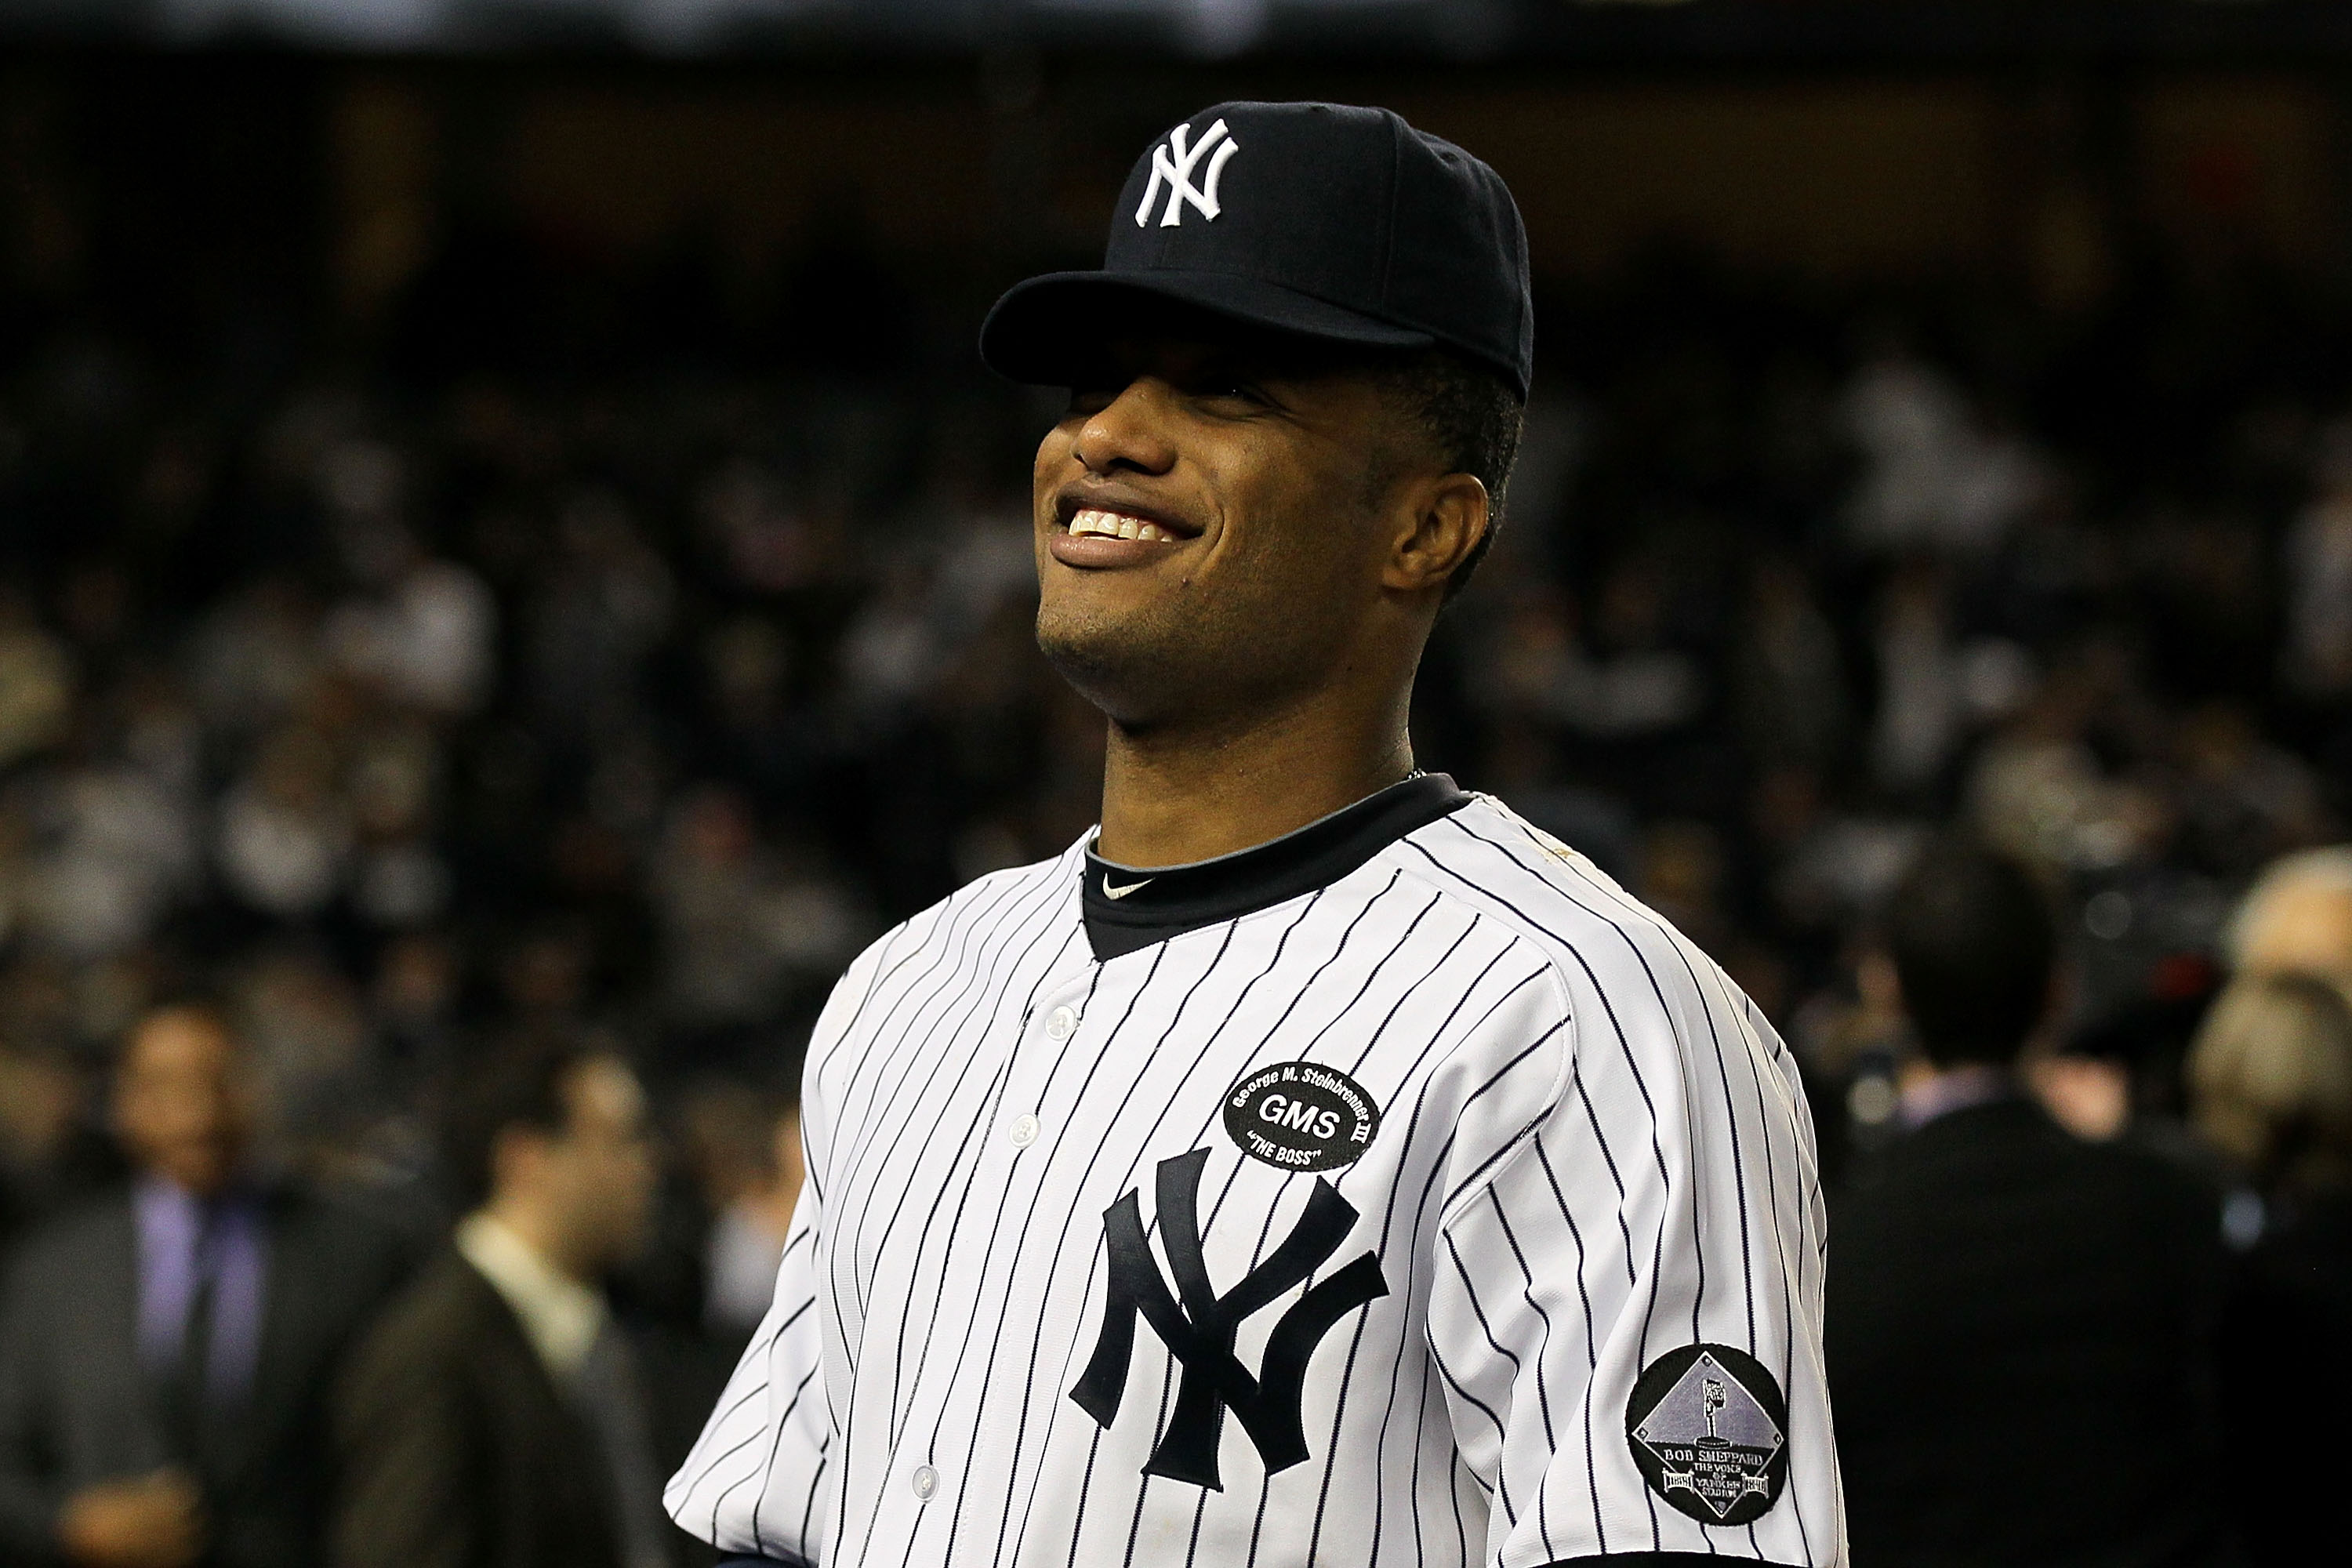 NEW YORK - OCTOBER 09:  Robinson Cano #24 of the New York Yankees celebrates afte the Yankees 6-1 win against the Minnesota Twins during Game Three of the ALDS part of the 2010 MLB Playoffs at Yankee Stadium on October 9, 2010 in the Bronx borough of New